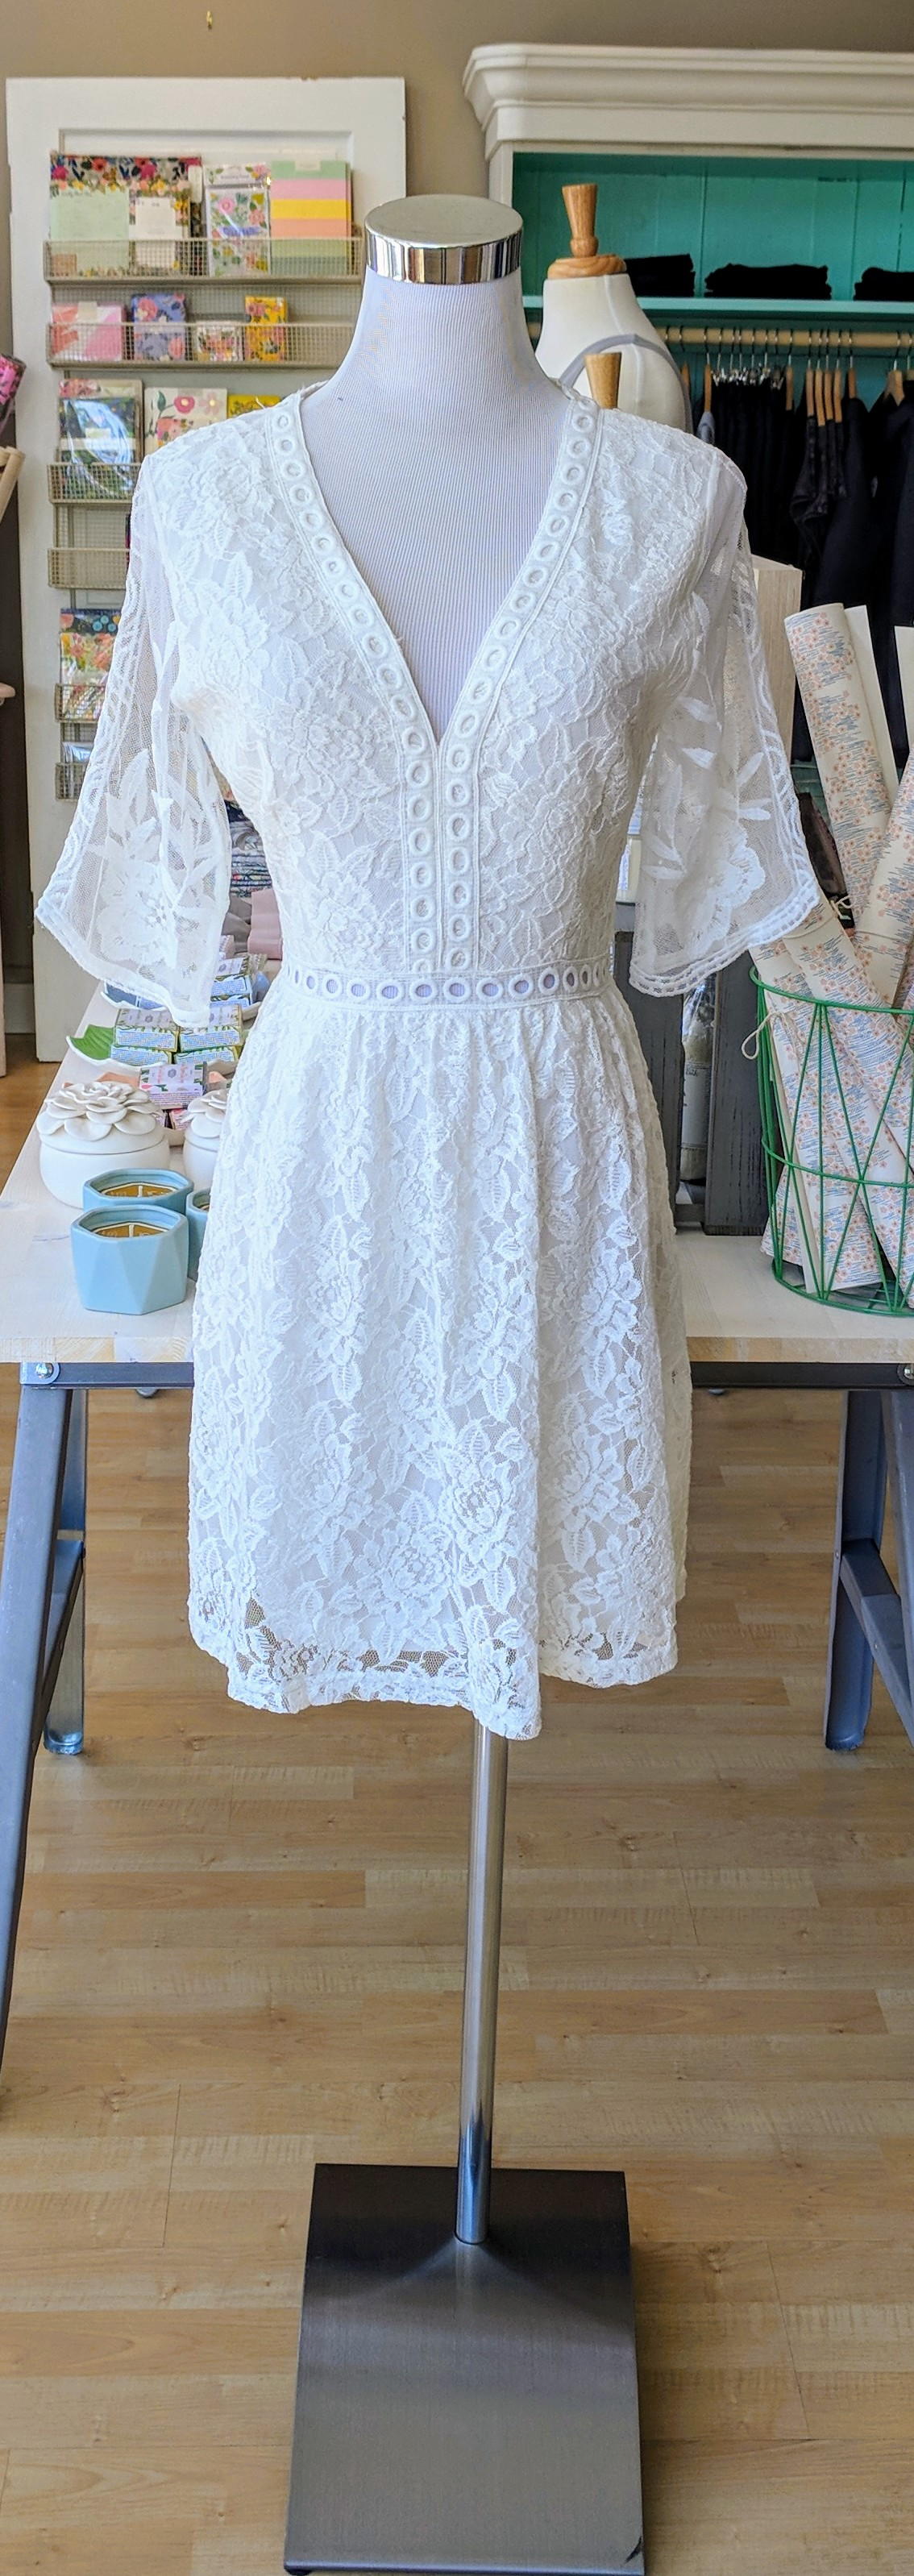 Off White crochet dress with bell sleeves.